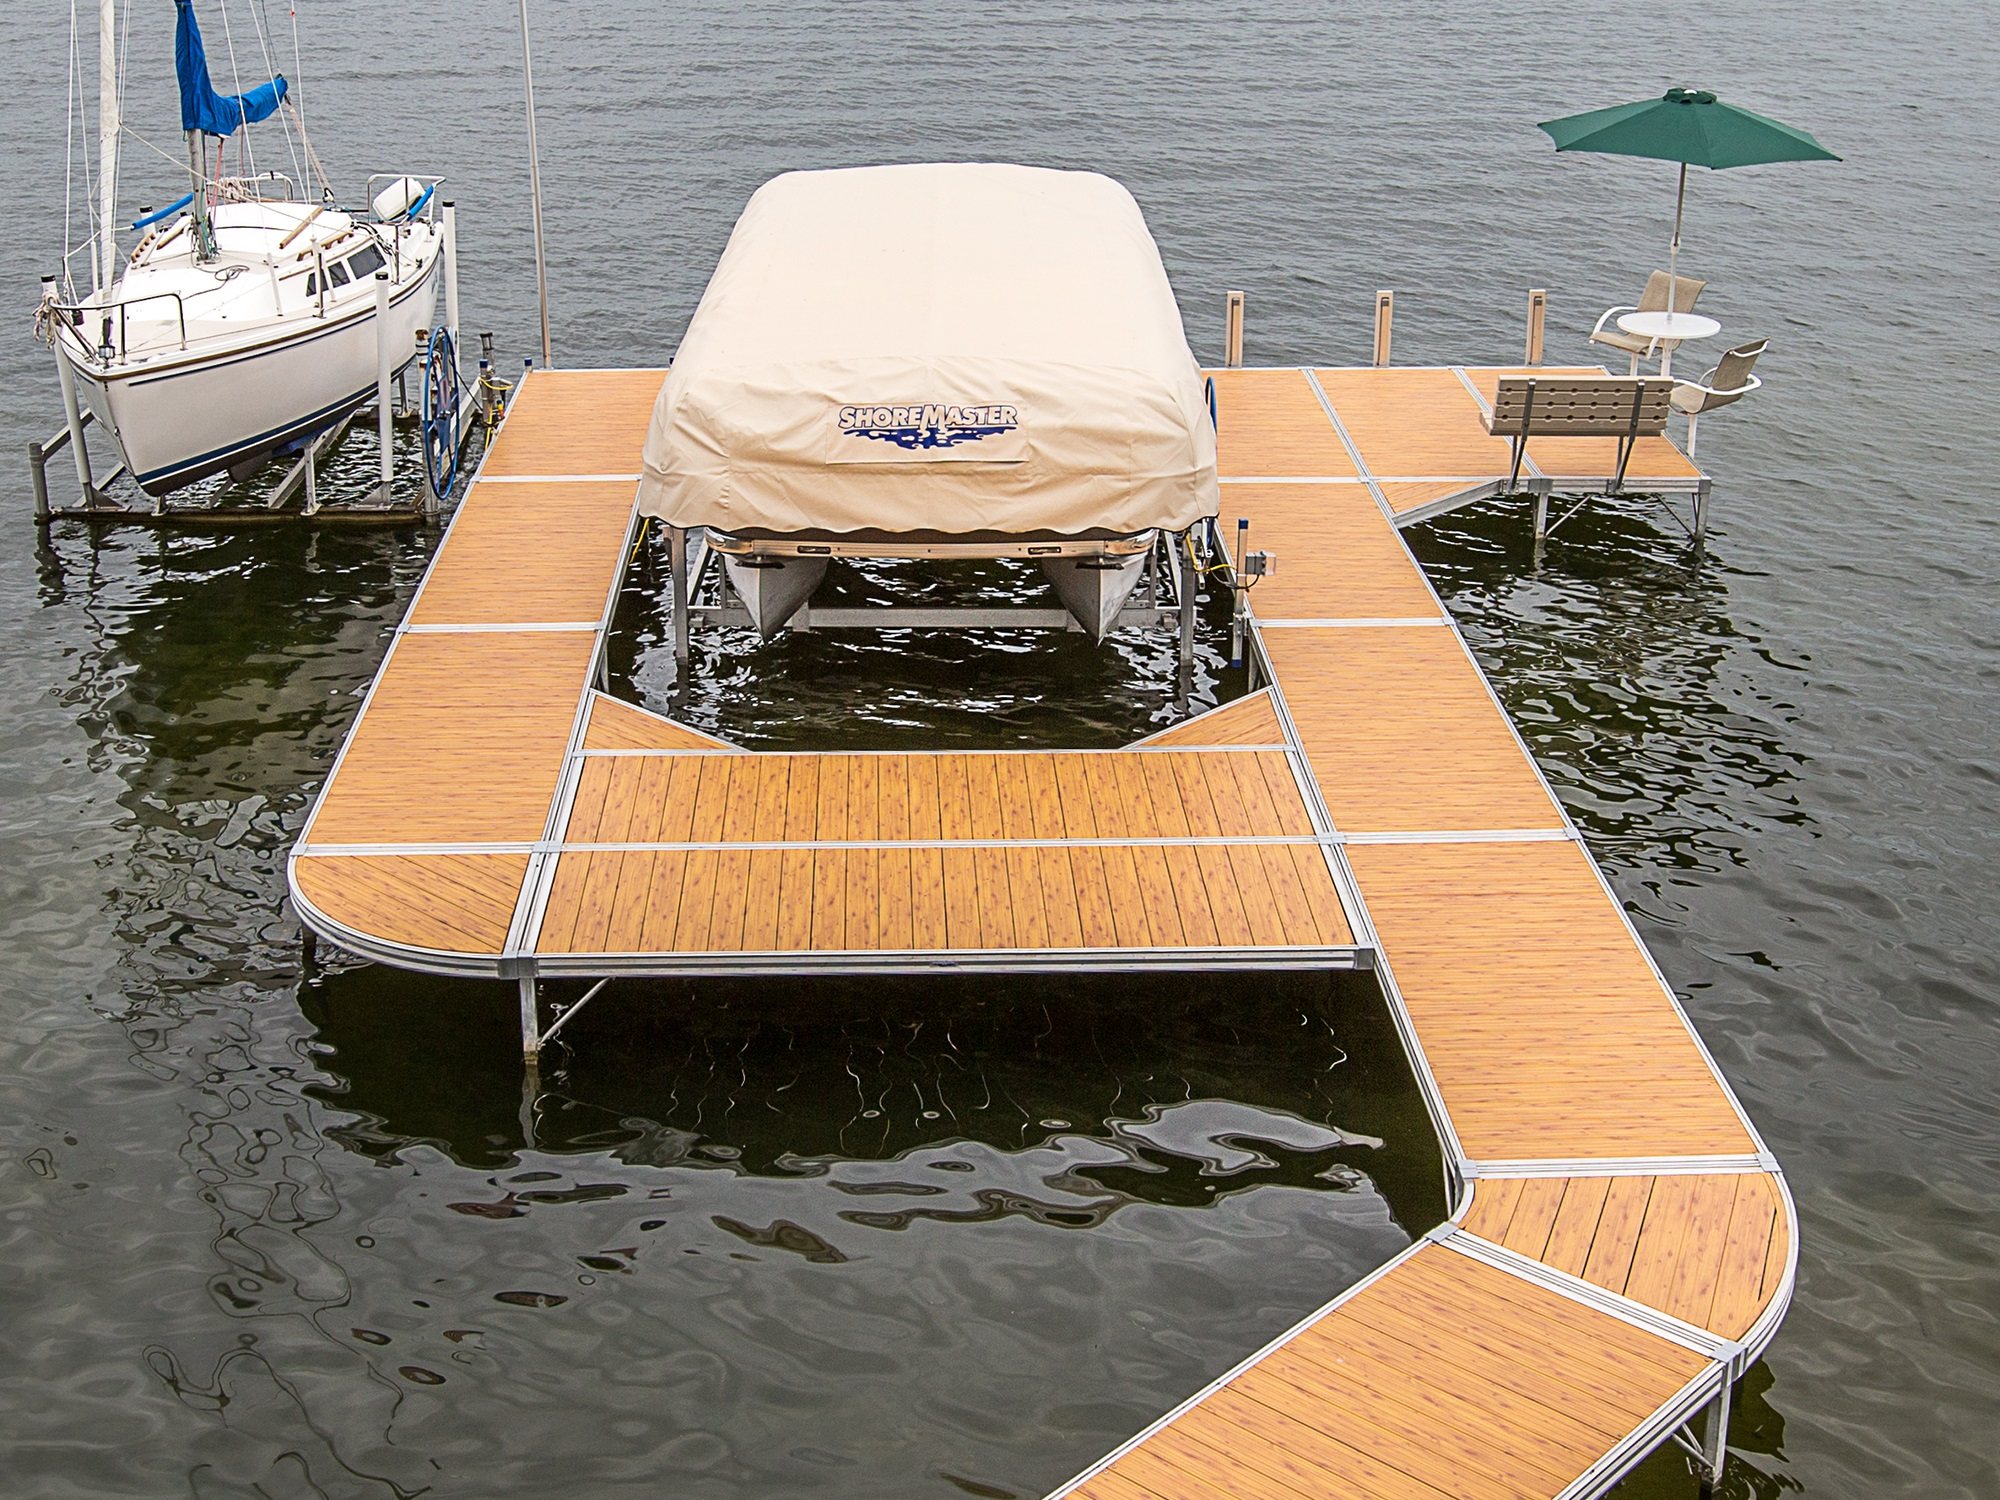 ShoreMaster Infinity RS4 Dock with Traditional Woodgrain Decking, Pontoon Lift, Dock Bench, Dock Furniture and Sailboat.